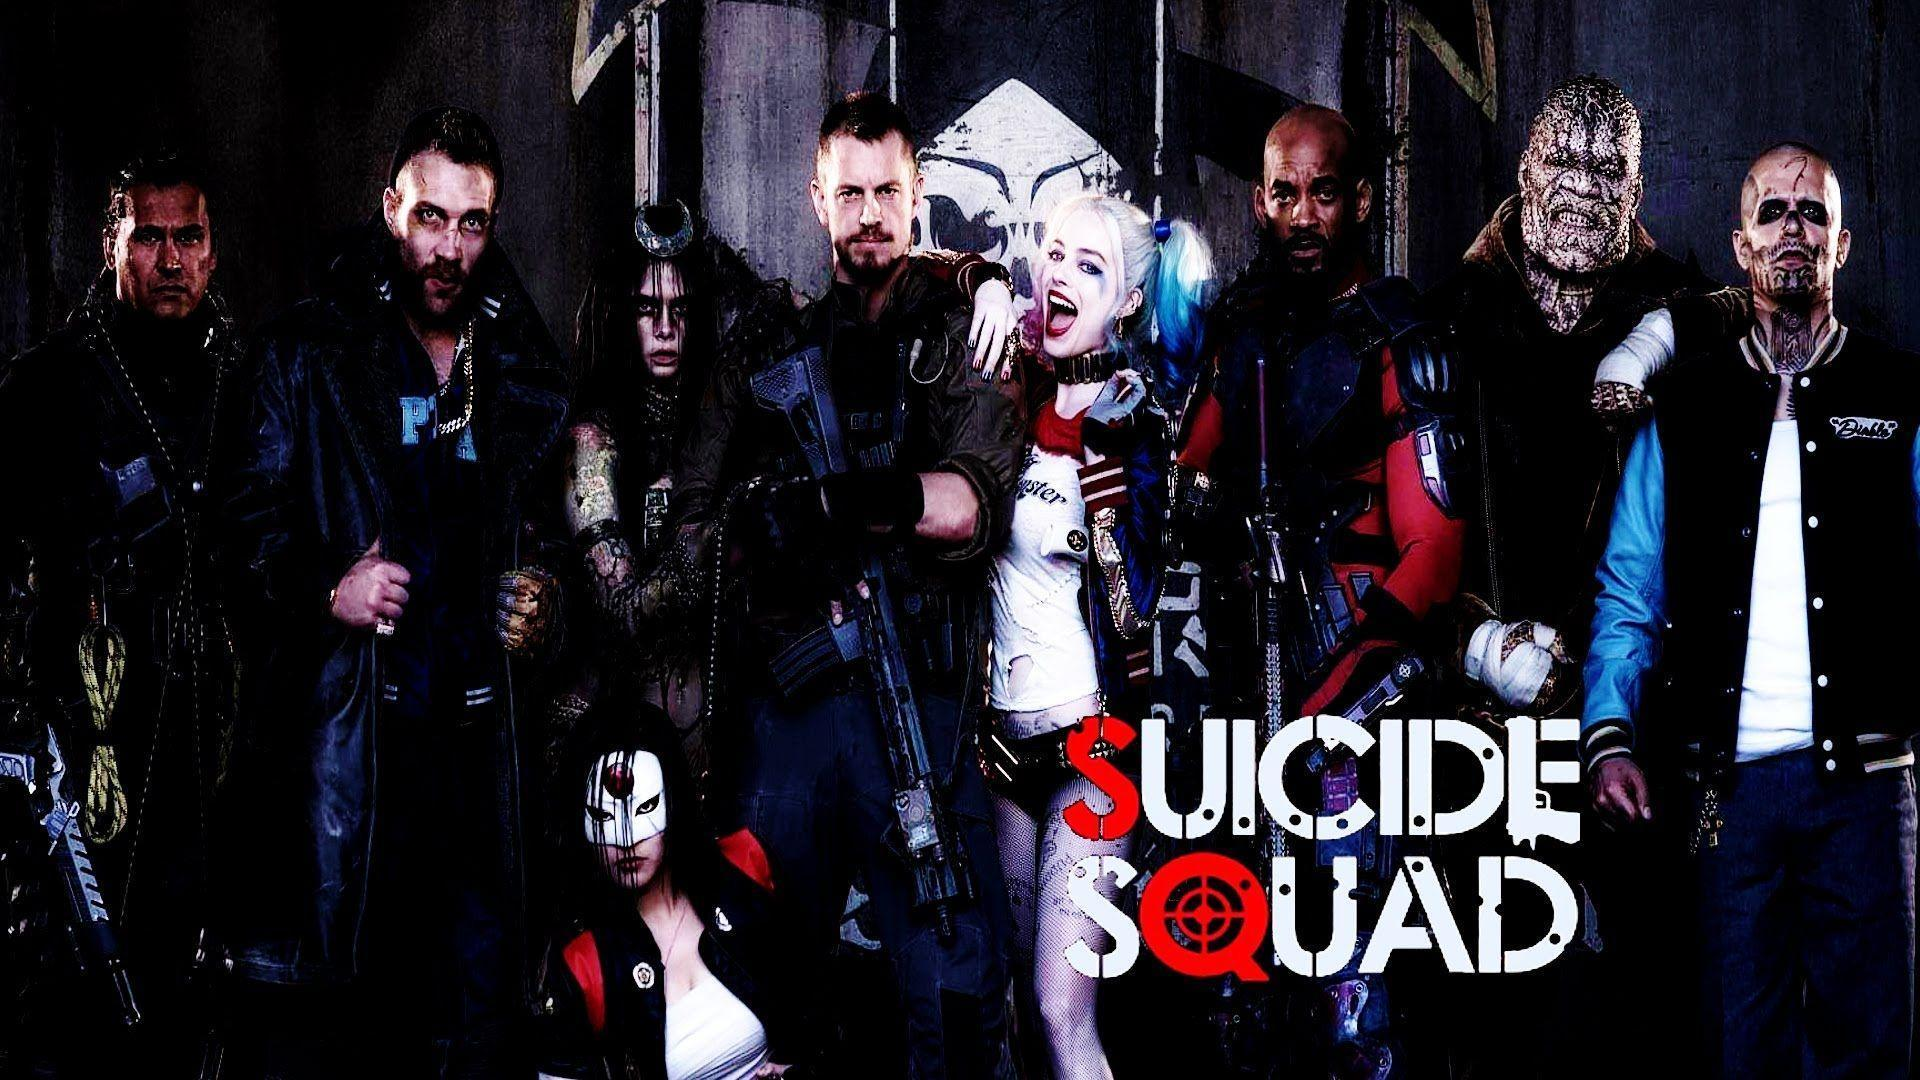 Suicide Squad 2016 HD wallpapers free download